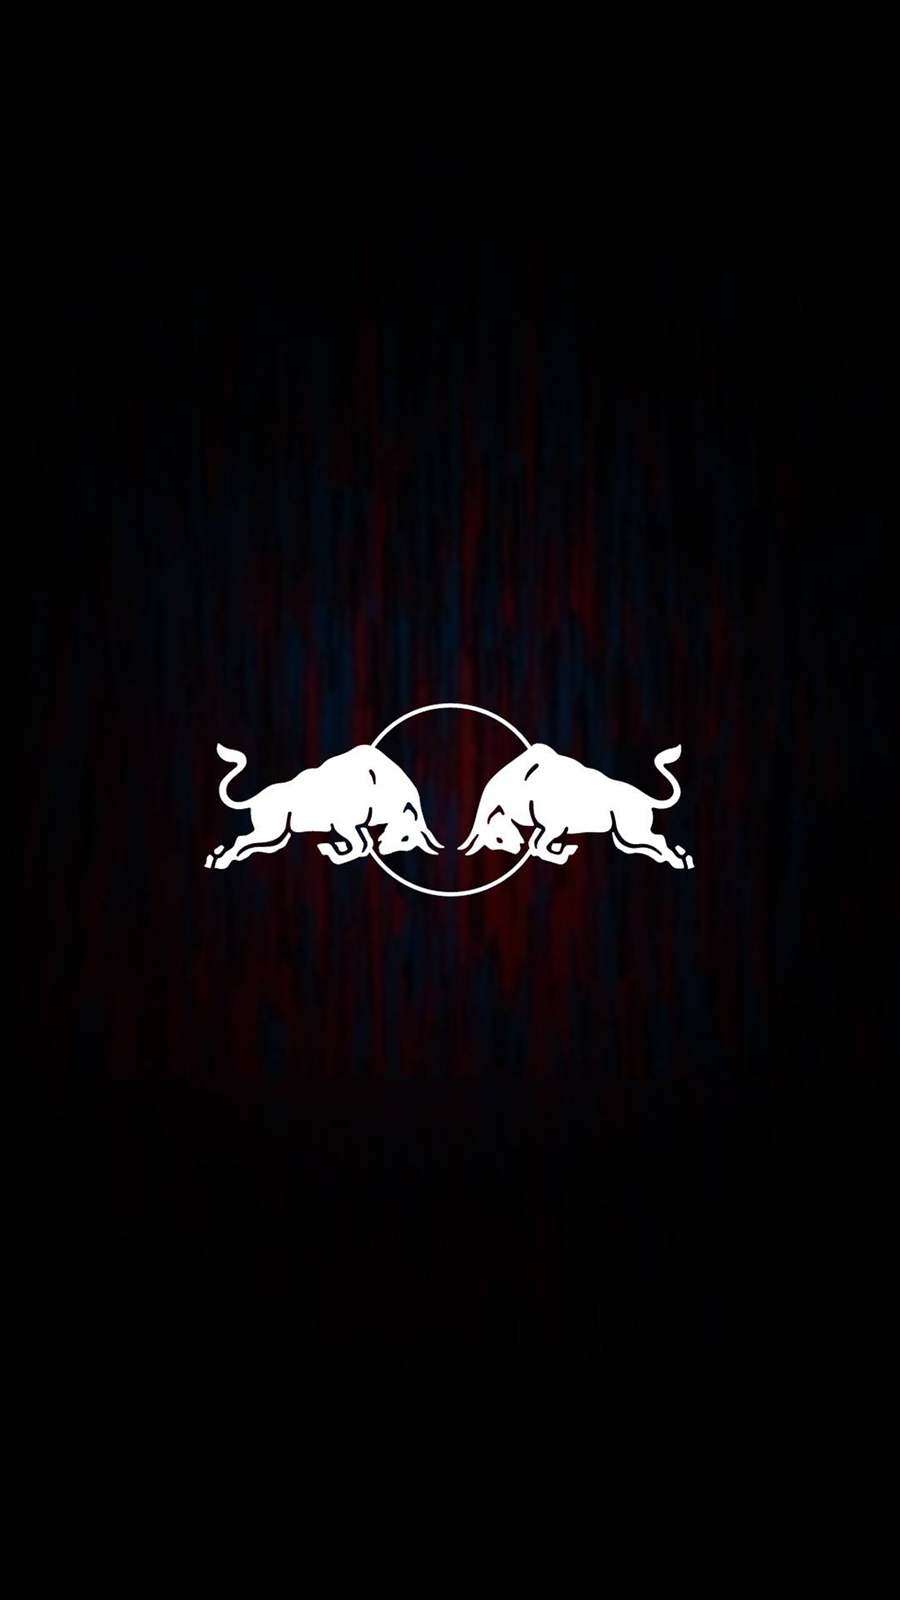 Red Bull, Leipzig Wallpapers Free Download For Your Device